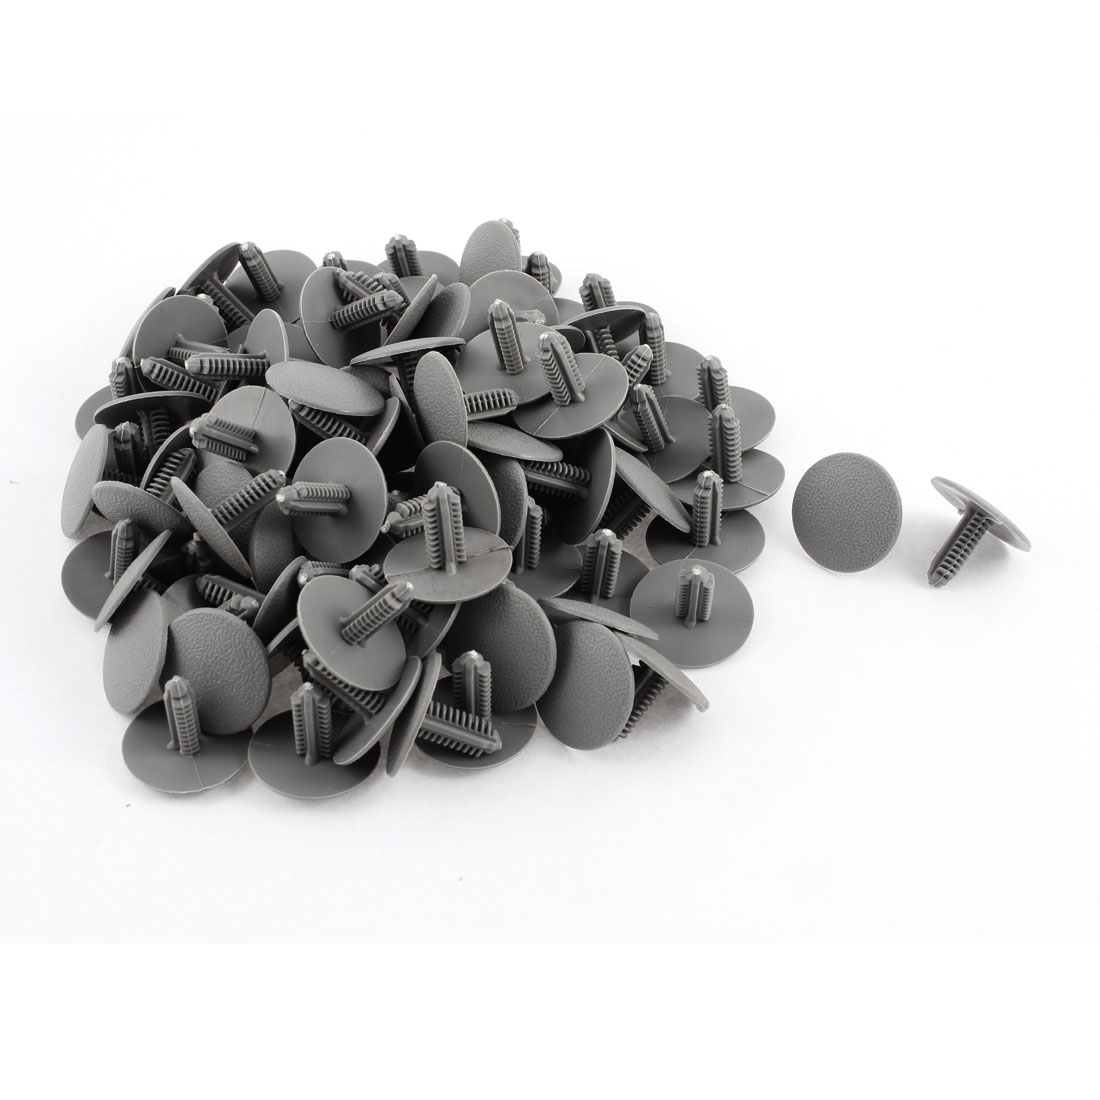 100 Pcs Gray Plastic Rivet Trim Fastener Retainer Clips 7mm x 18mm x 24mm